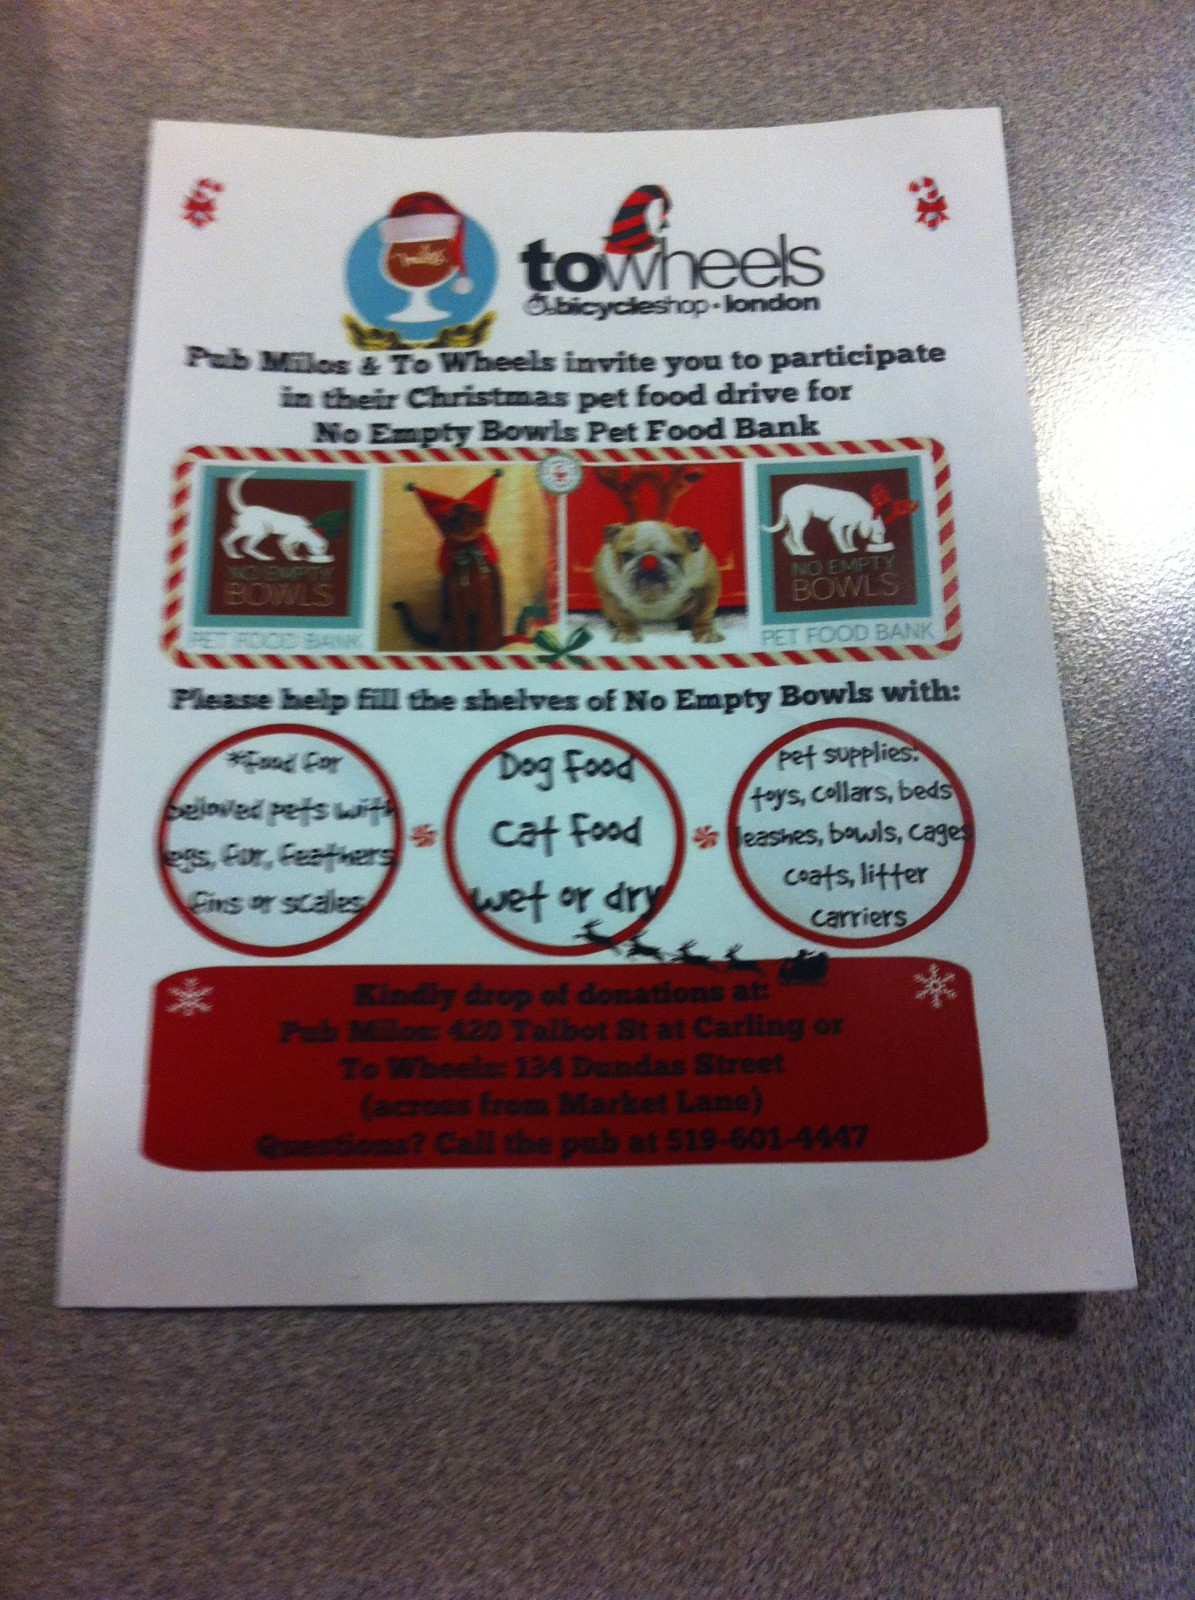 Local couple delivers pet food to owners in need